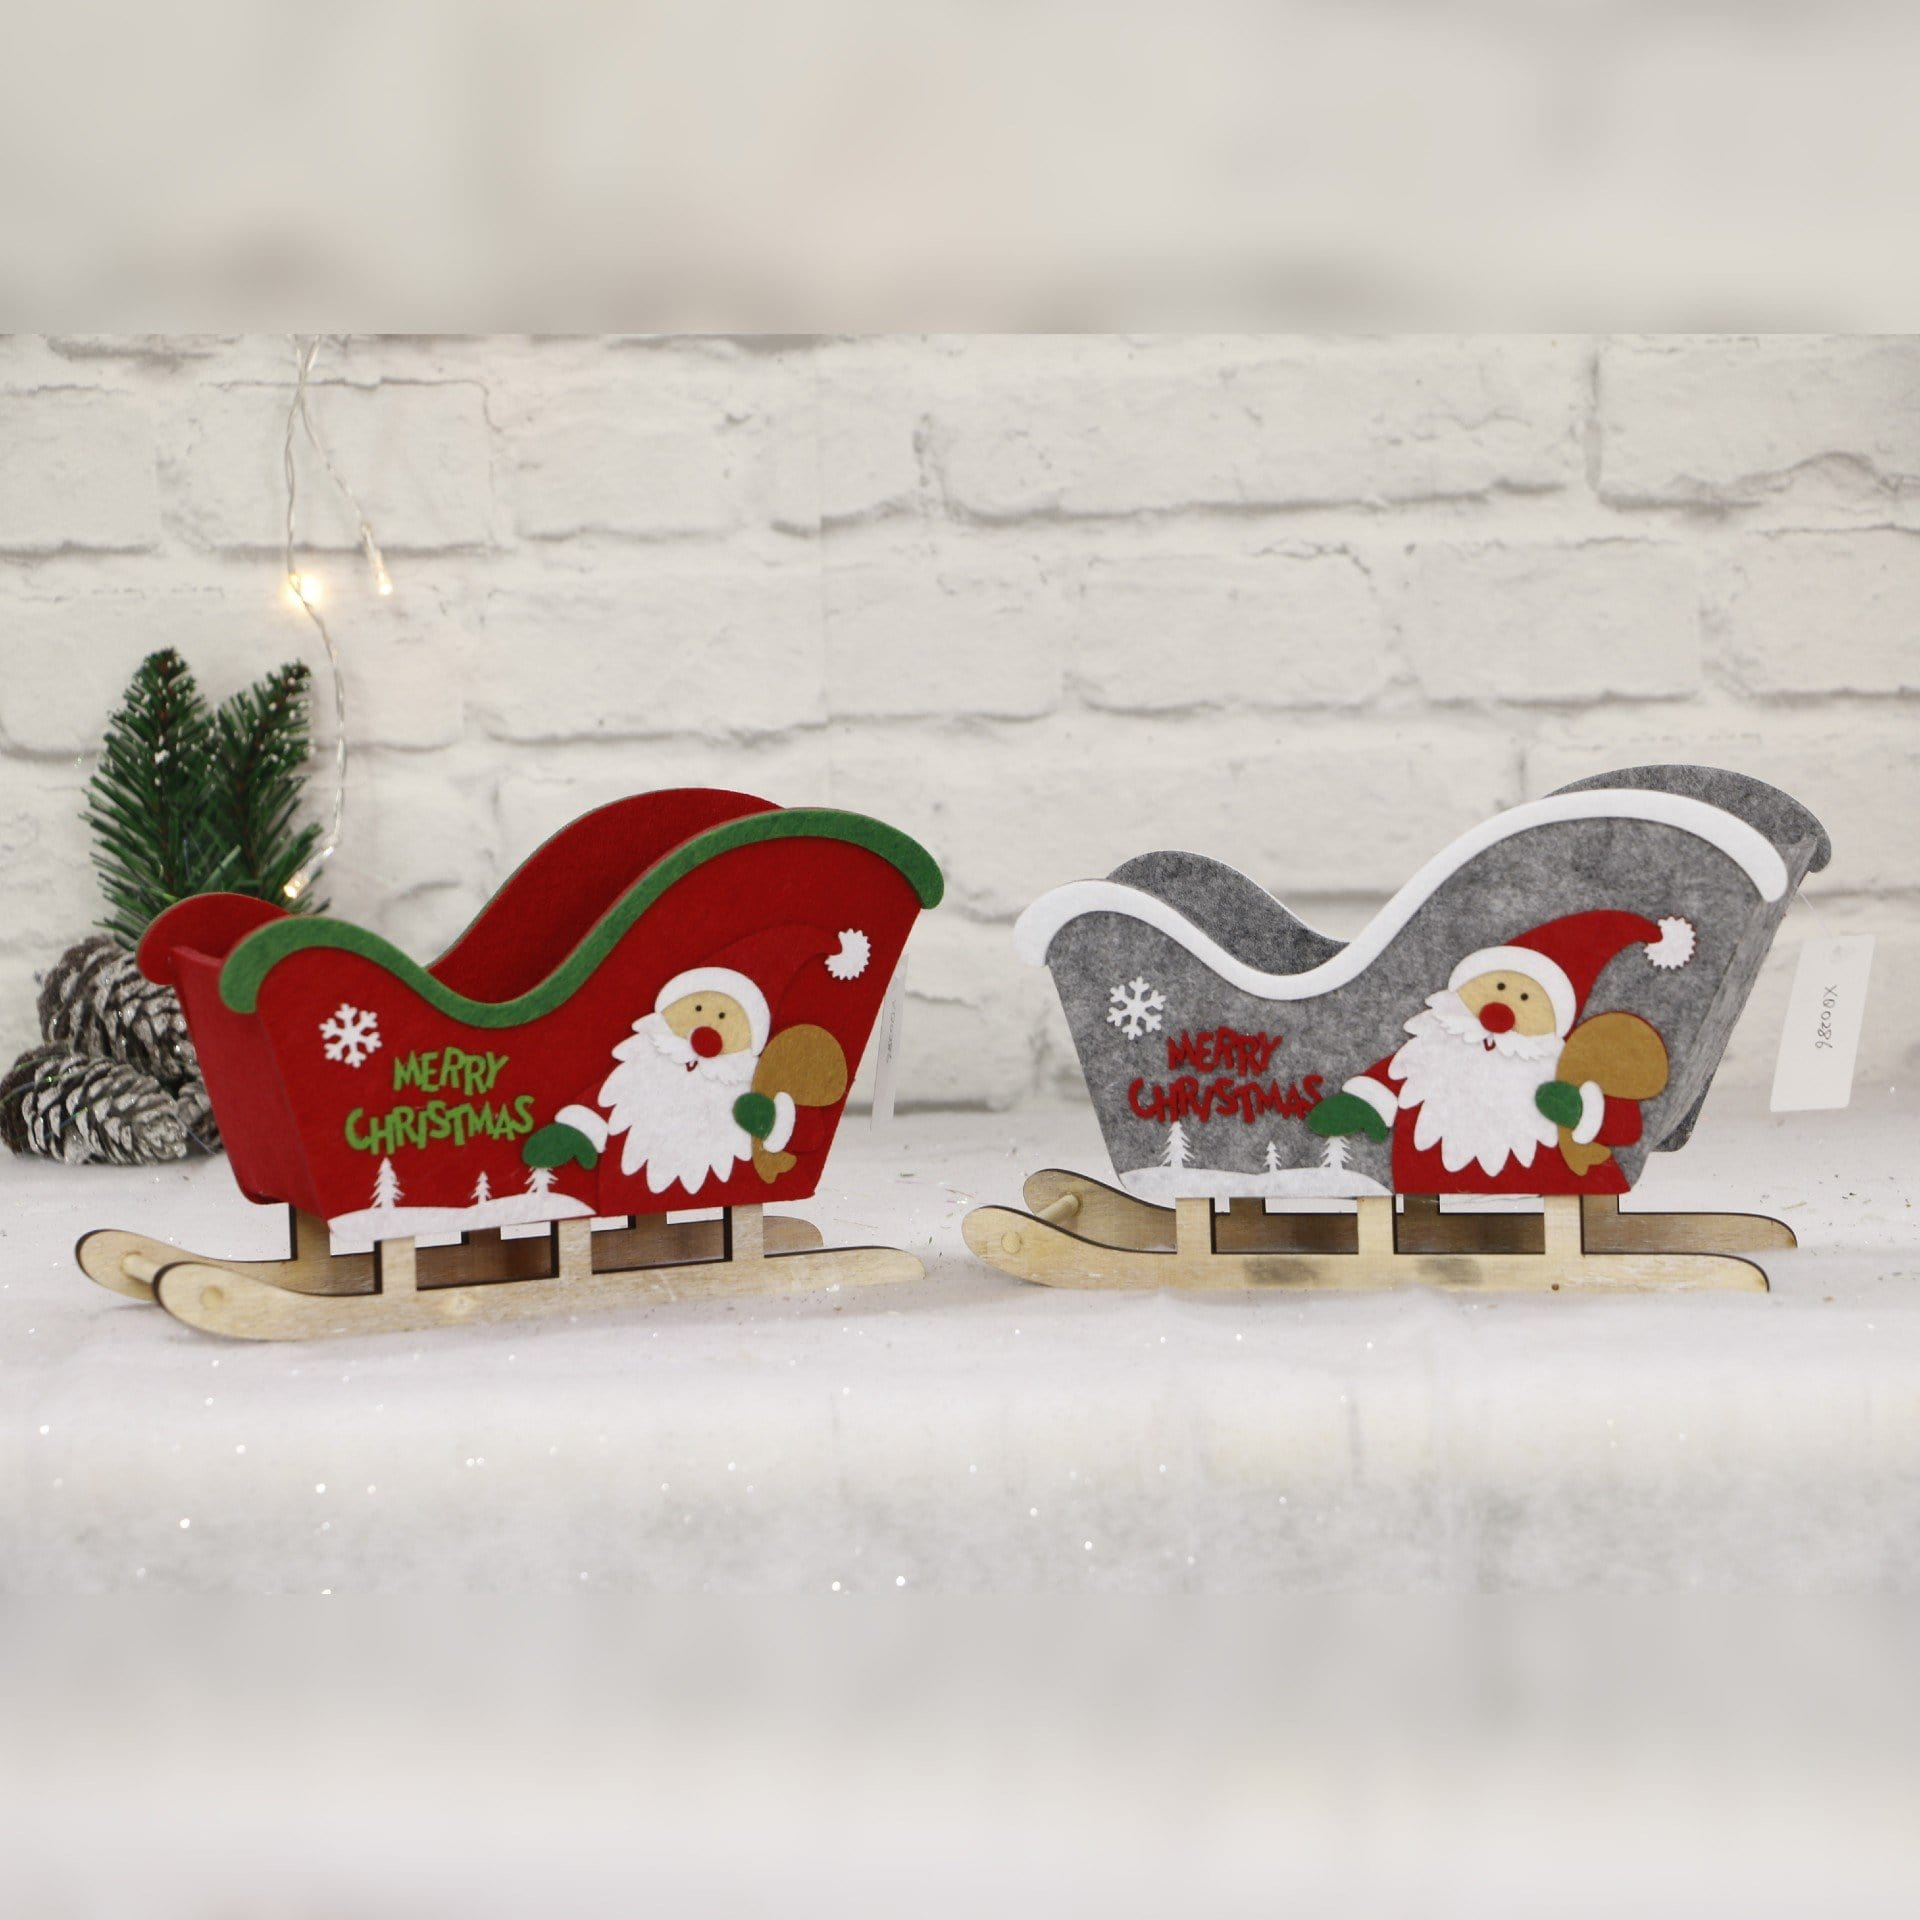 Felt Sleigh with Plywood Rails